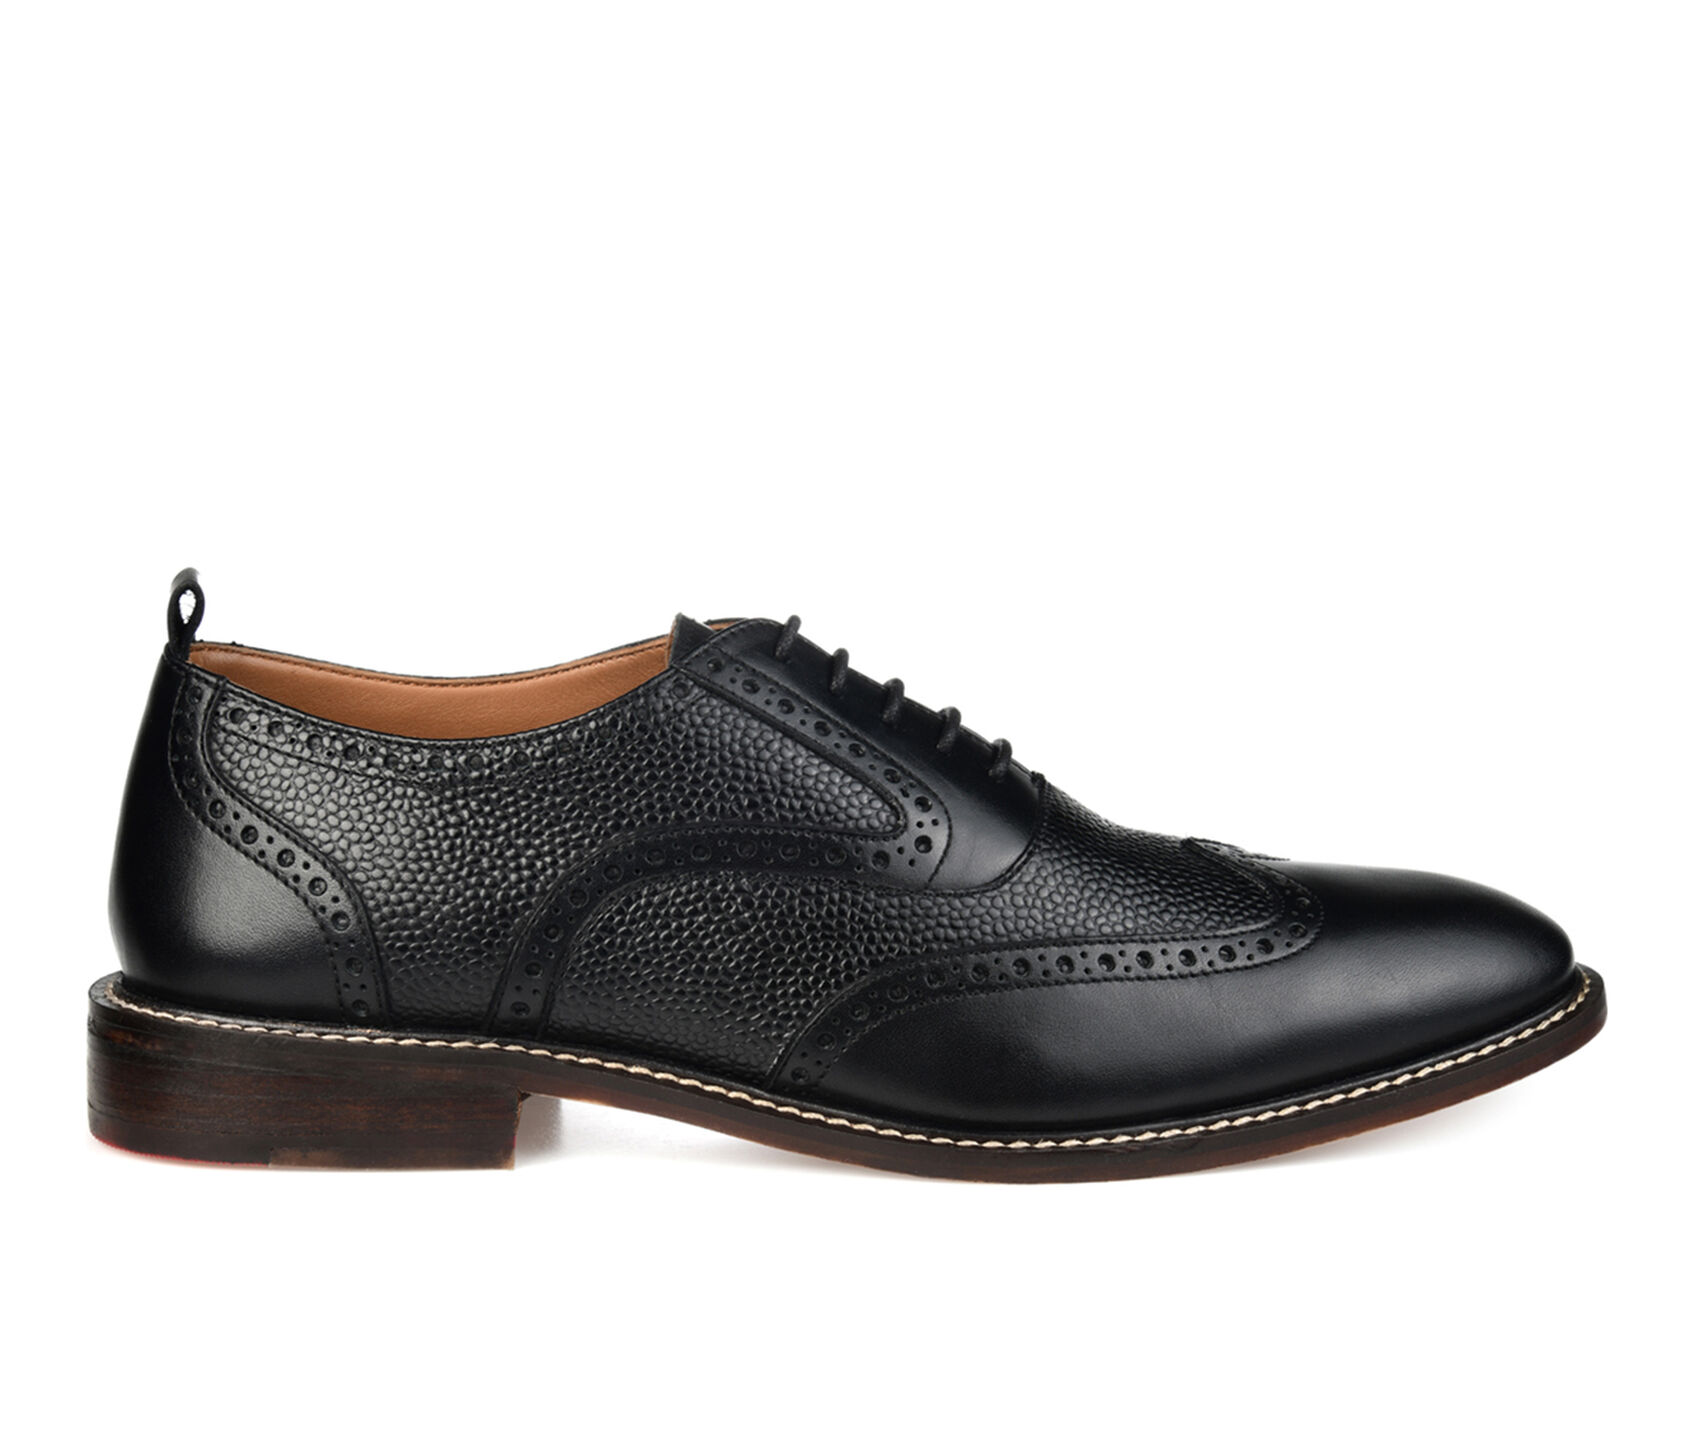 Winter Men/'s Real Leather Workwear Oxfords Casual Outdoor Loafers Slip-on Shoes